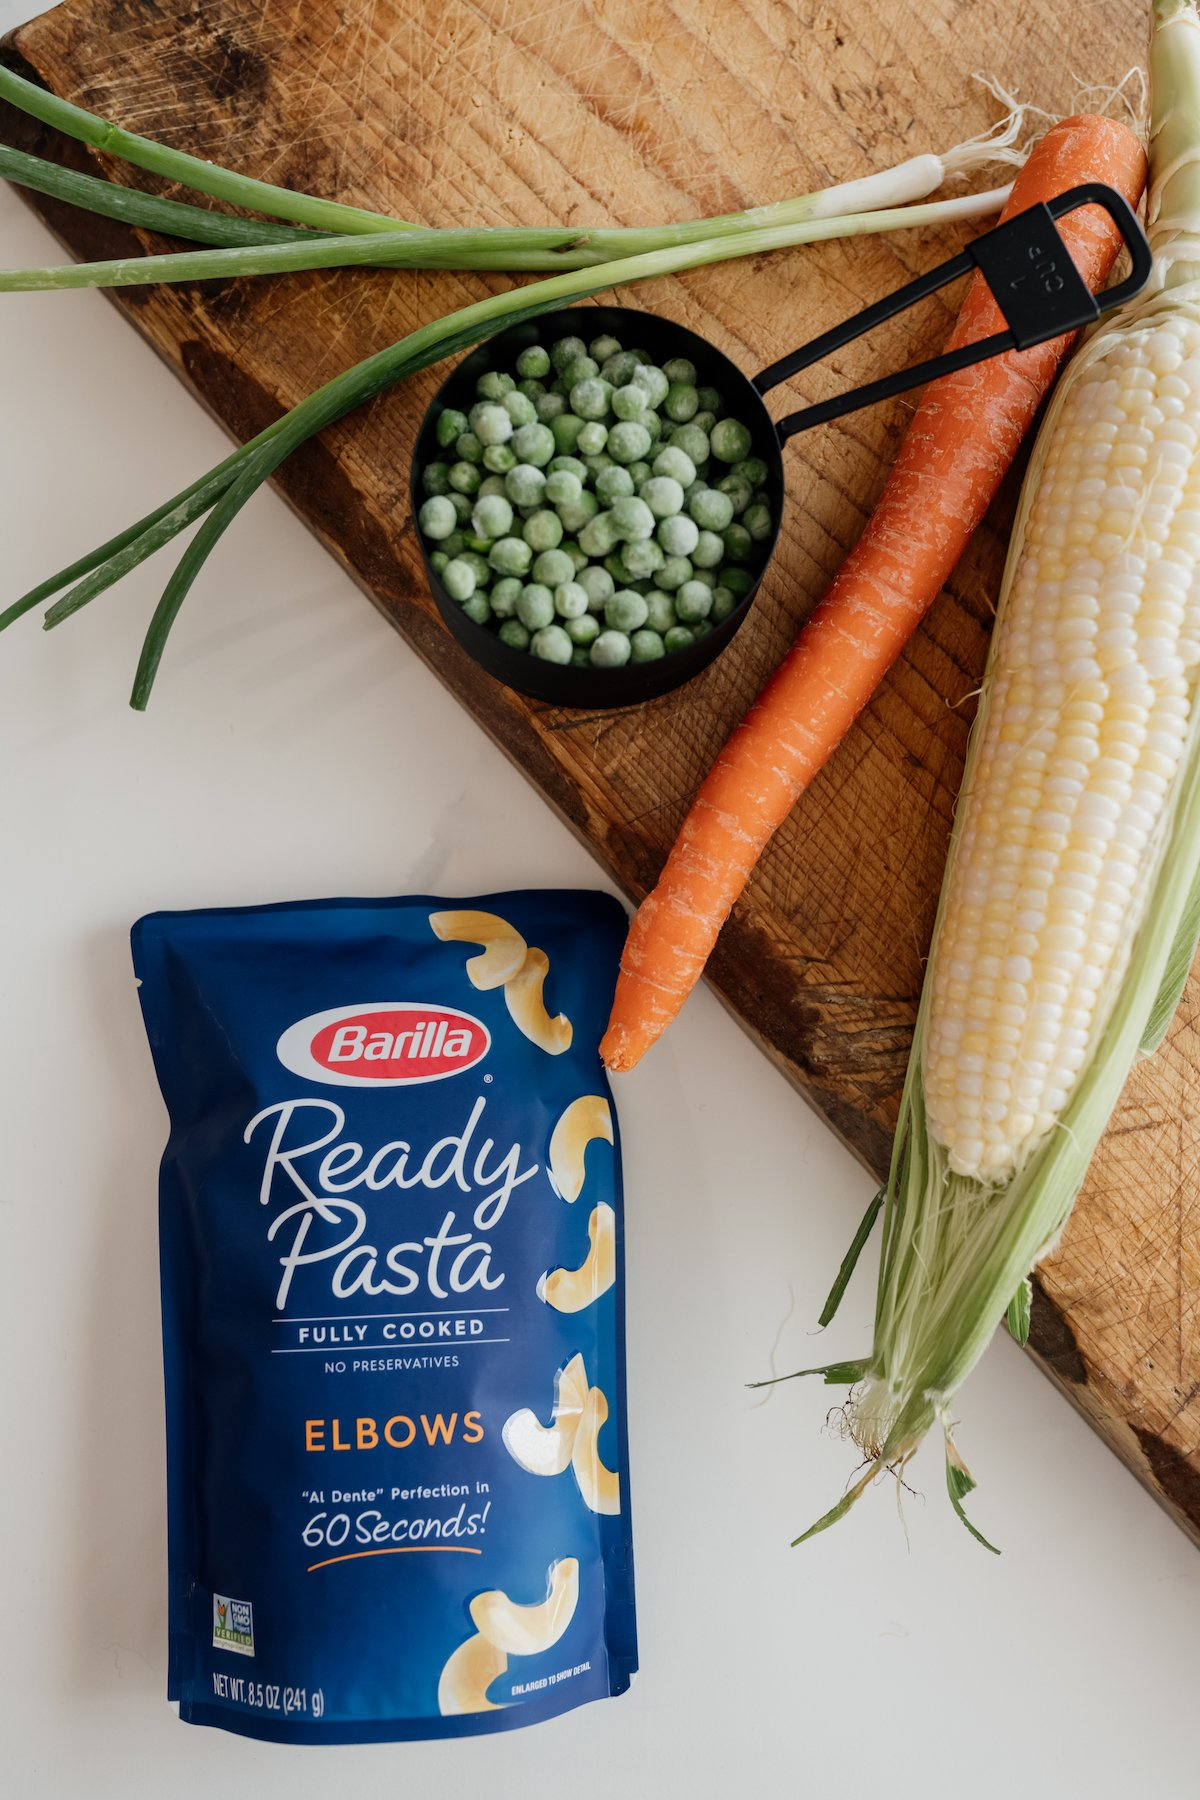 Barilla Ready Pasta pouch with fresh ingredients on a cutting board